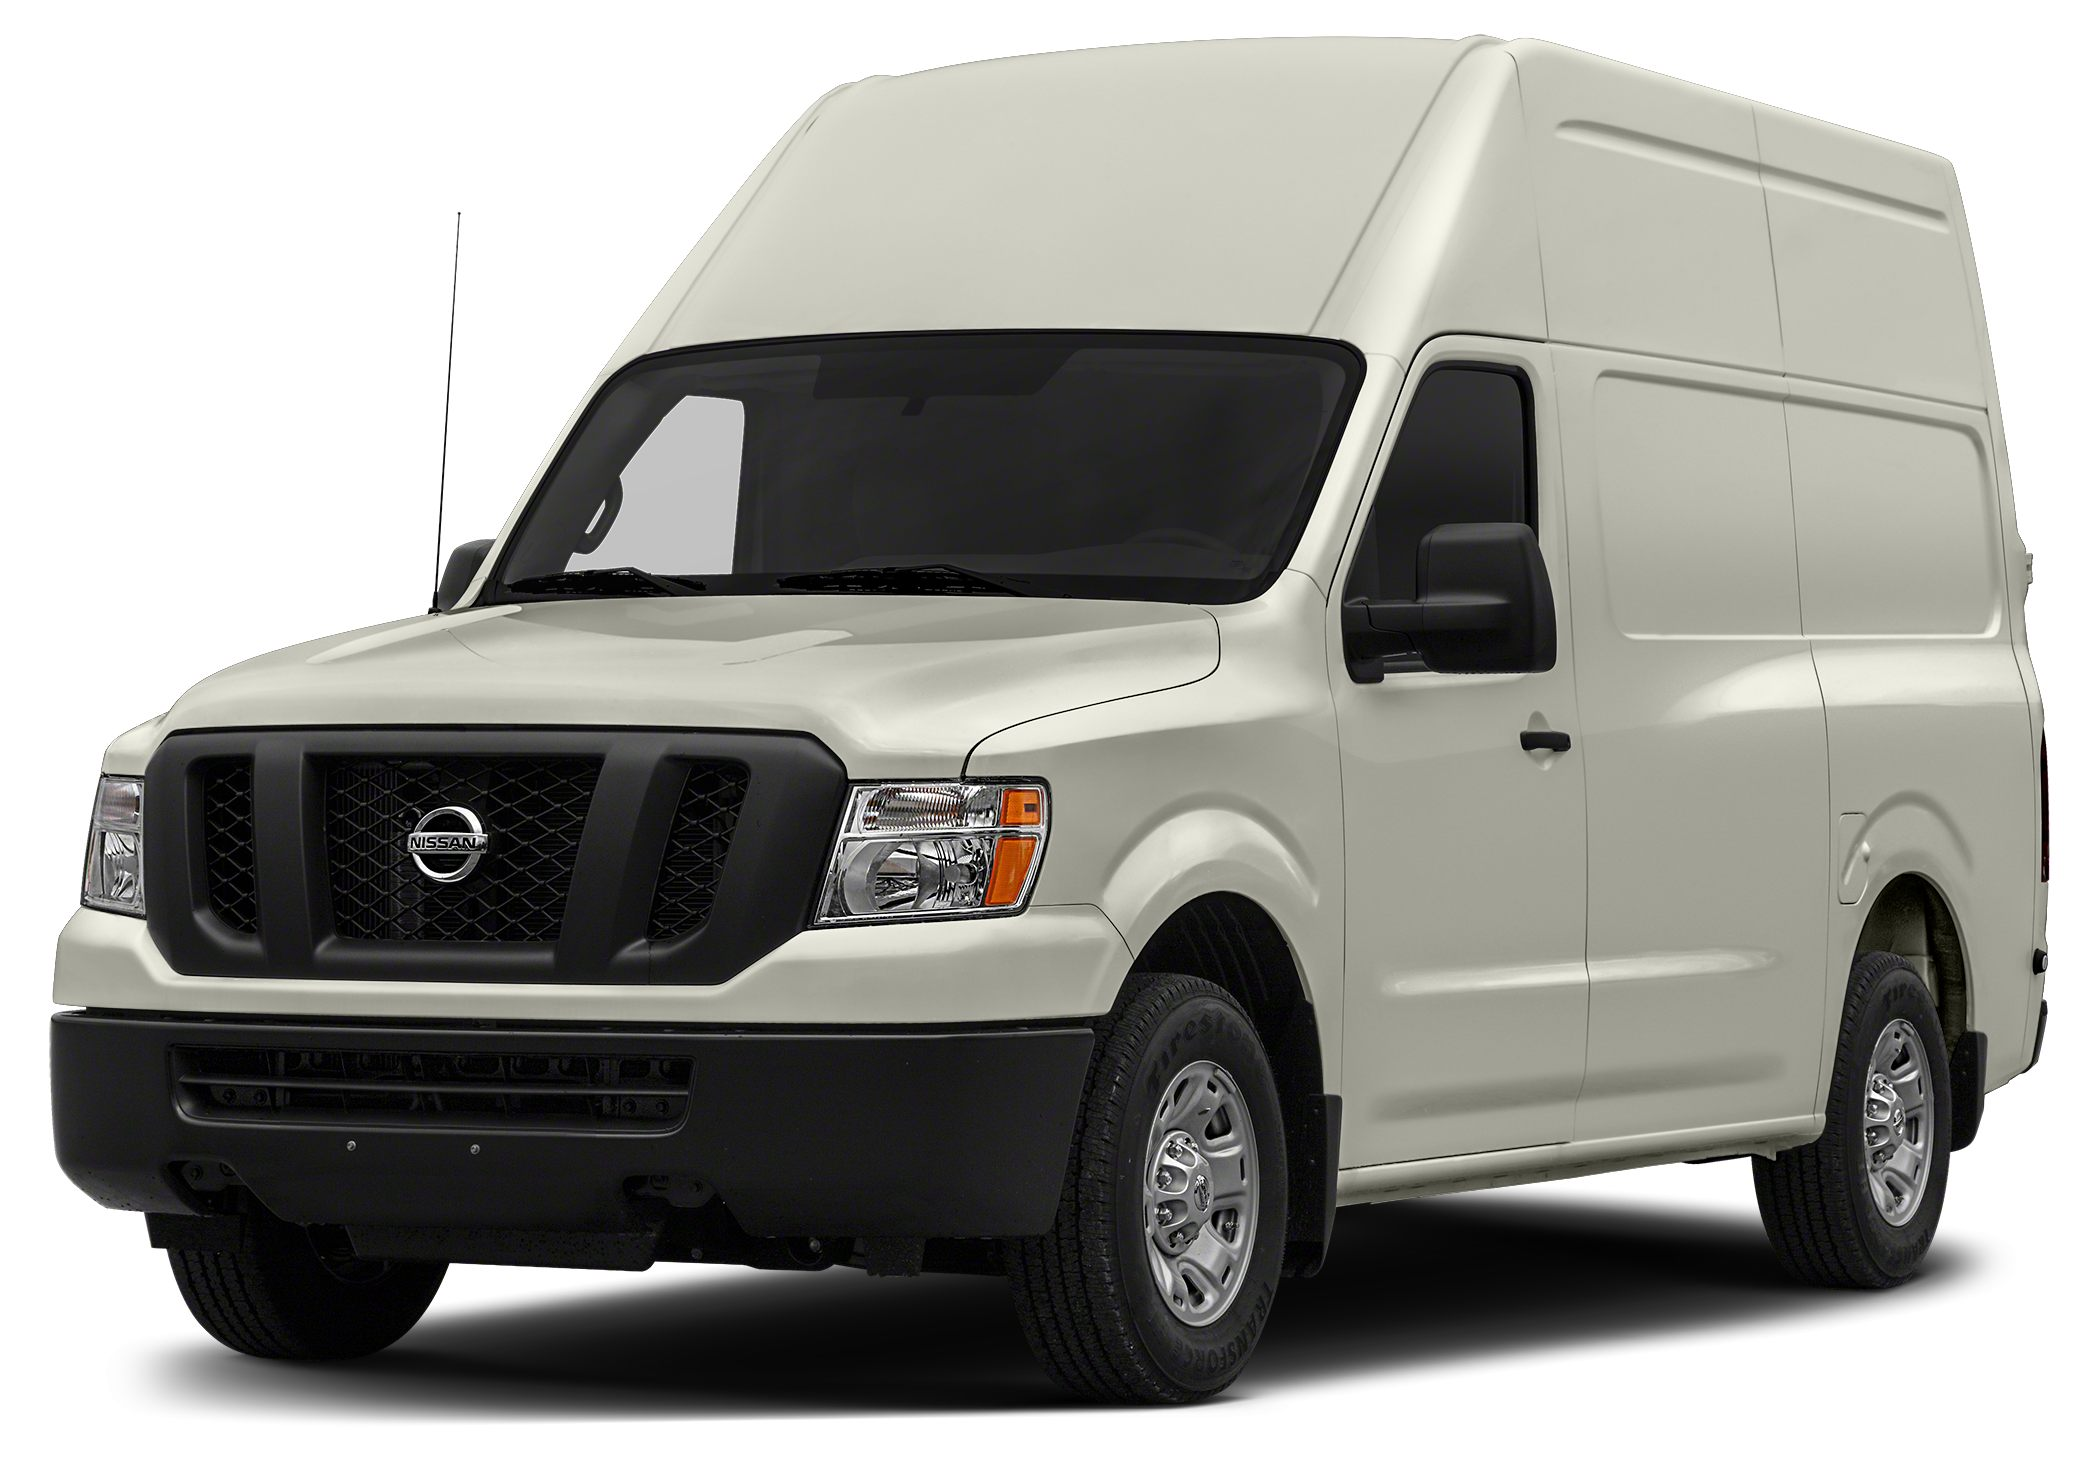 2012 Nissan NV Series S The THUNDER has come to Bartow Florida 2012 Nissan NV2500 HD S Blizzard